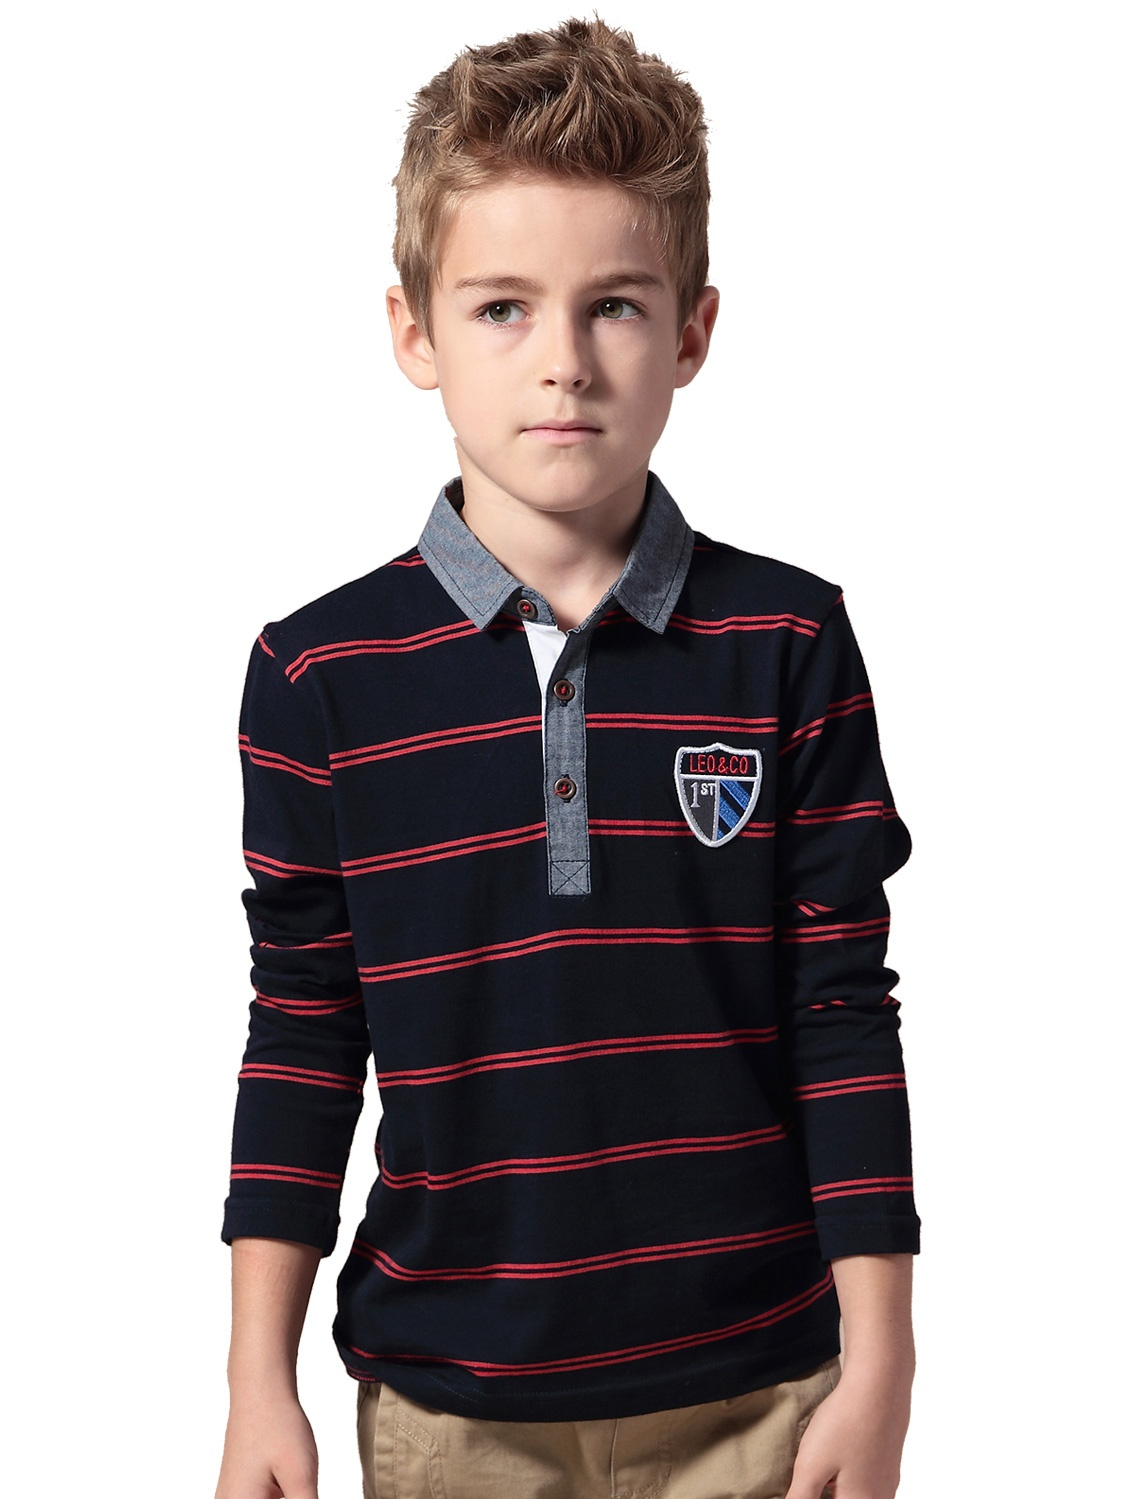 leo&lily boys' long sleeves striped cardigan rugby polo shirt (navy, 14)